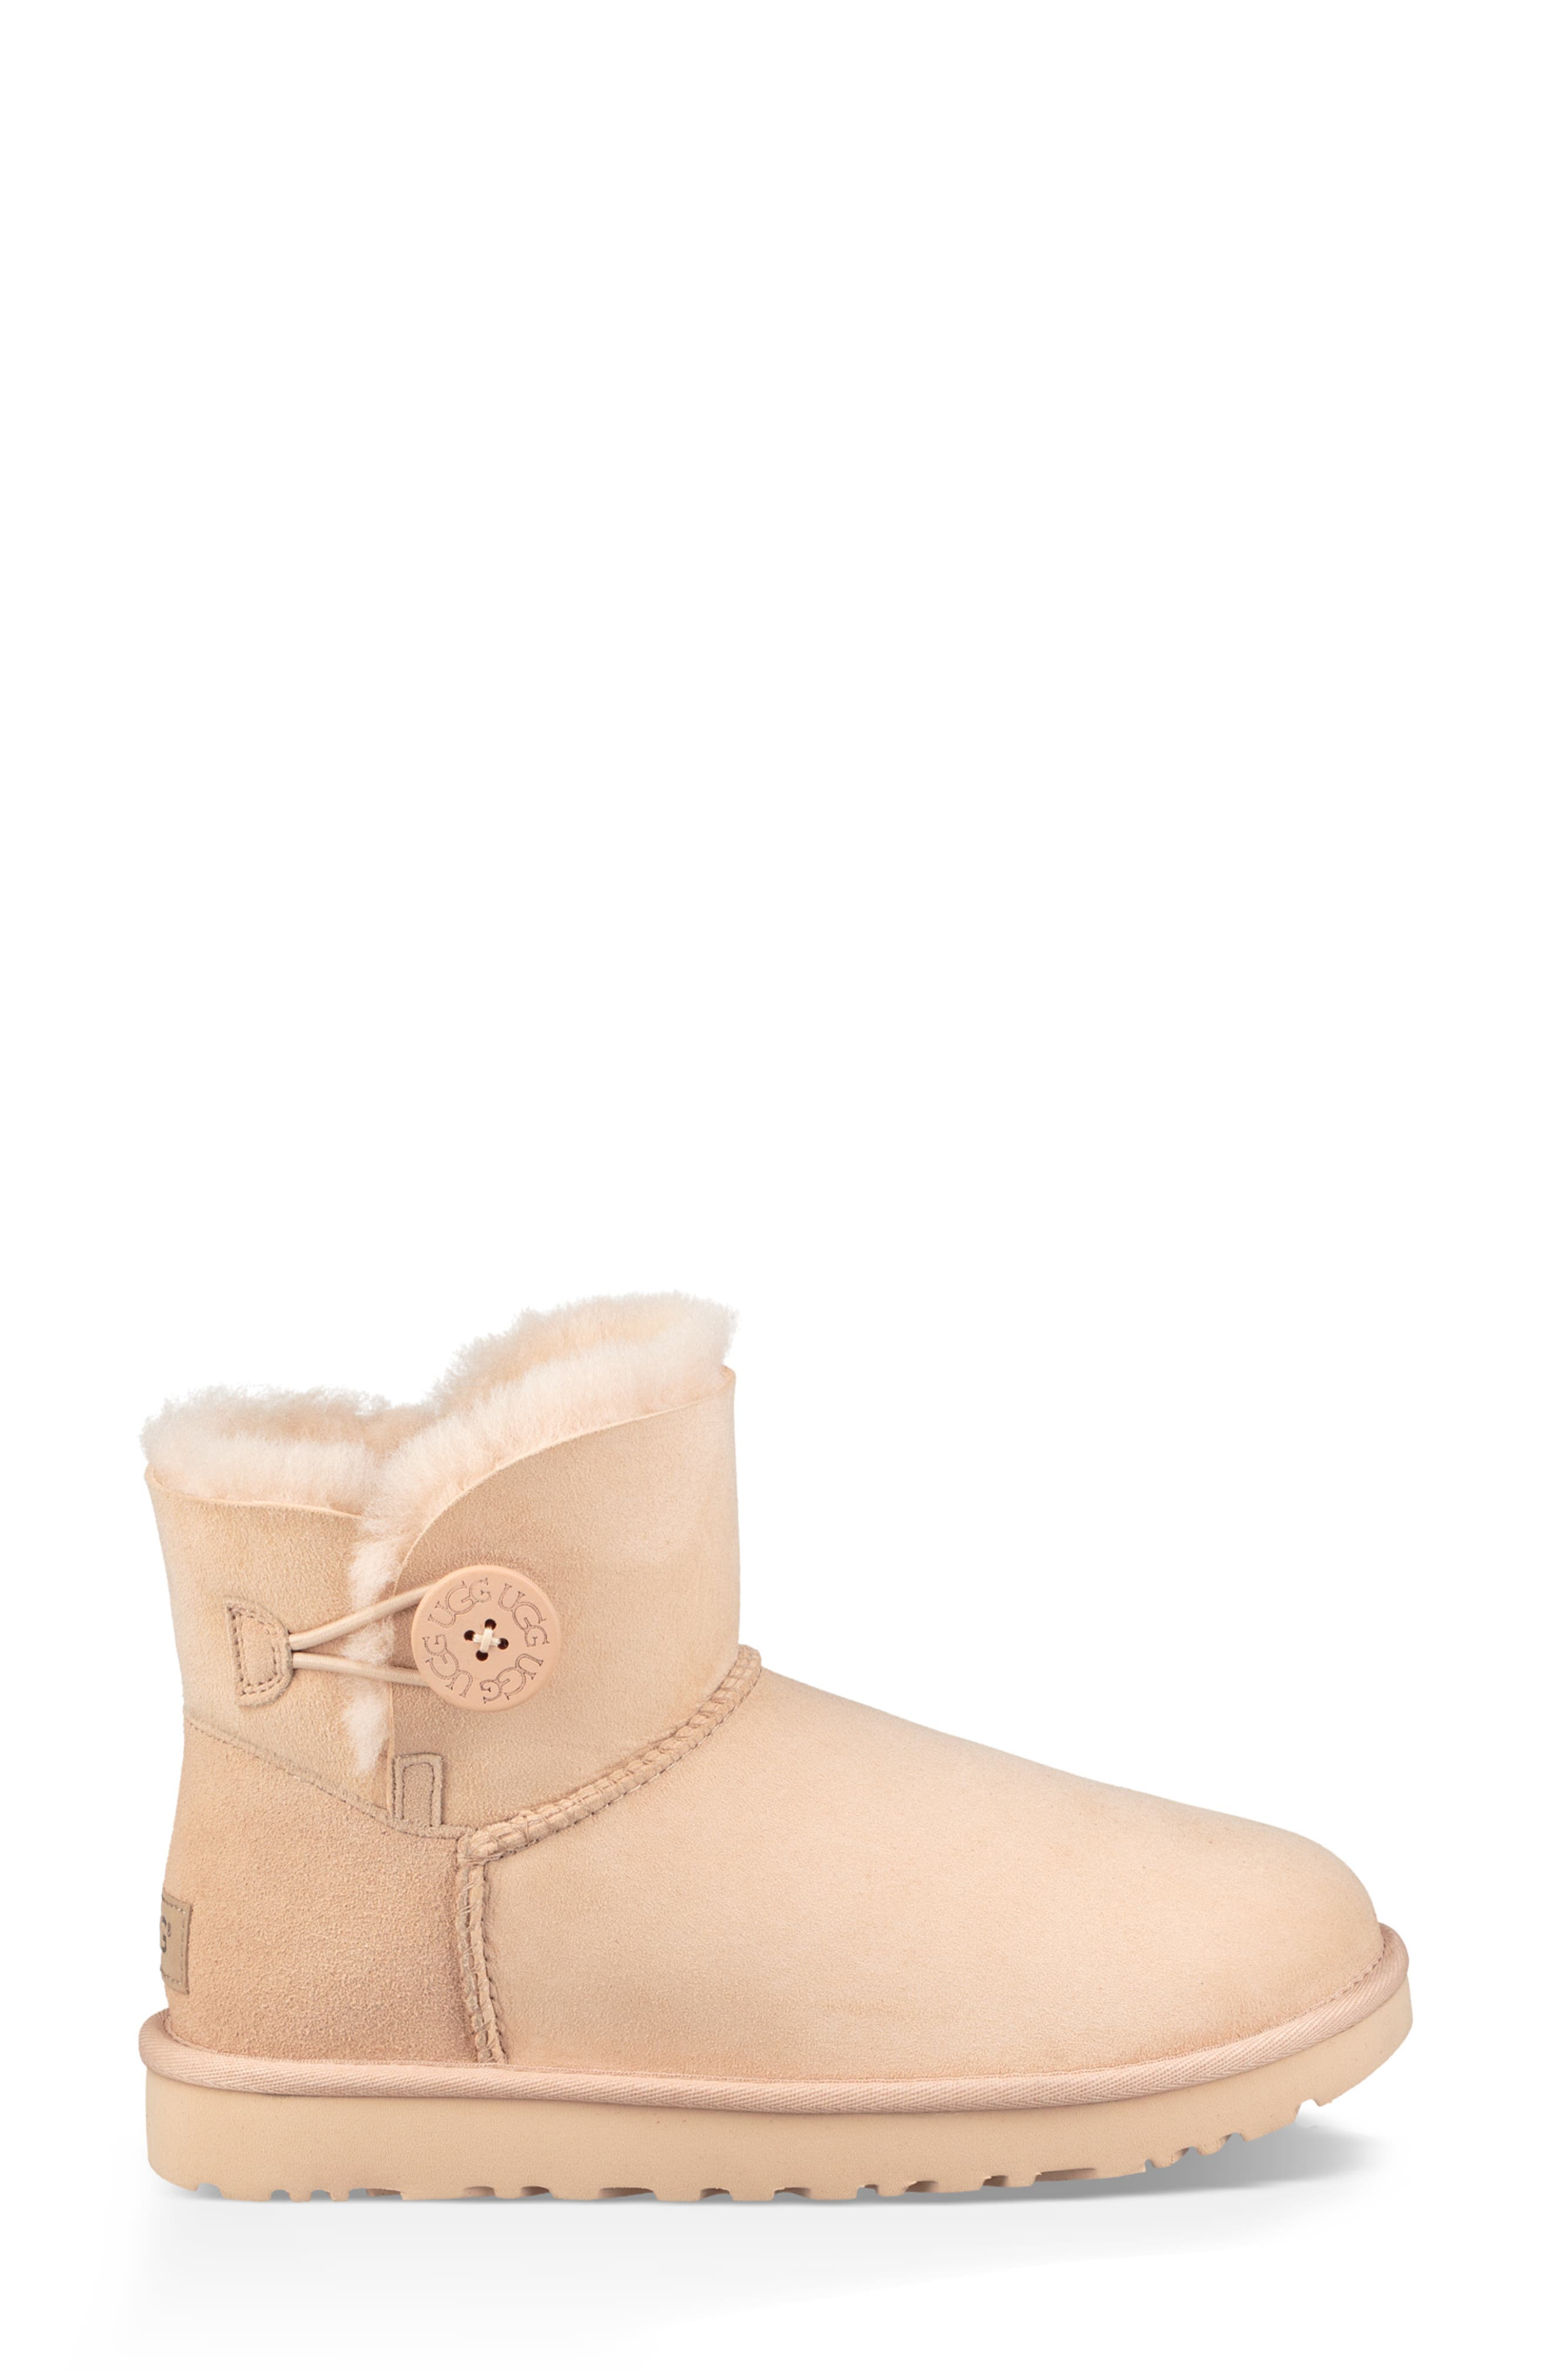 'Mini Bailey Button II' Boot,                             Alternate thumbnail 3, color,                             AMBER LIGHT SUEDE